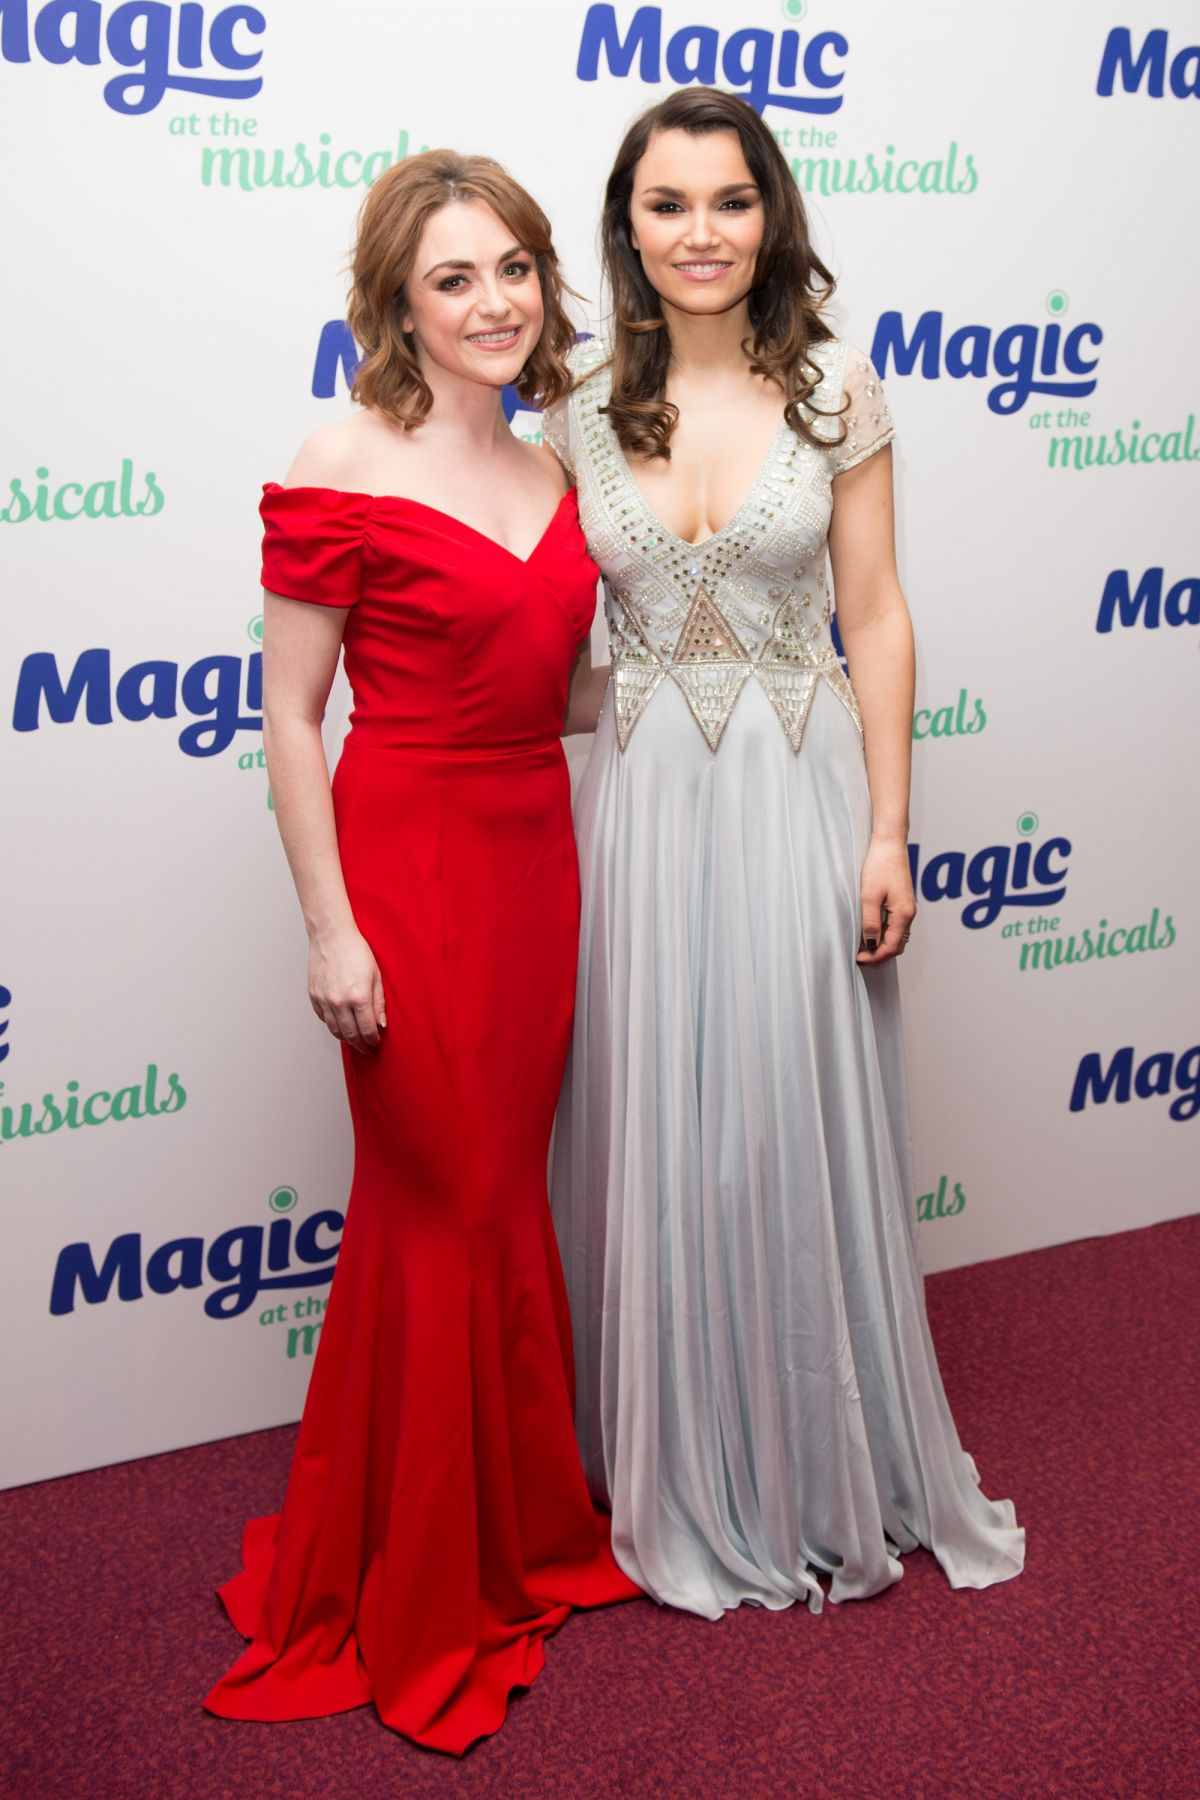 Samantha barks magic at the musicals in london uk nudes (66 images)